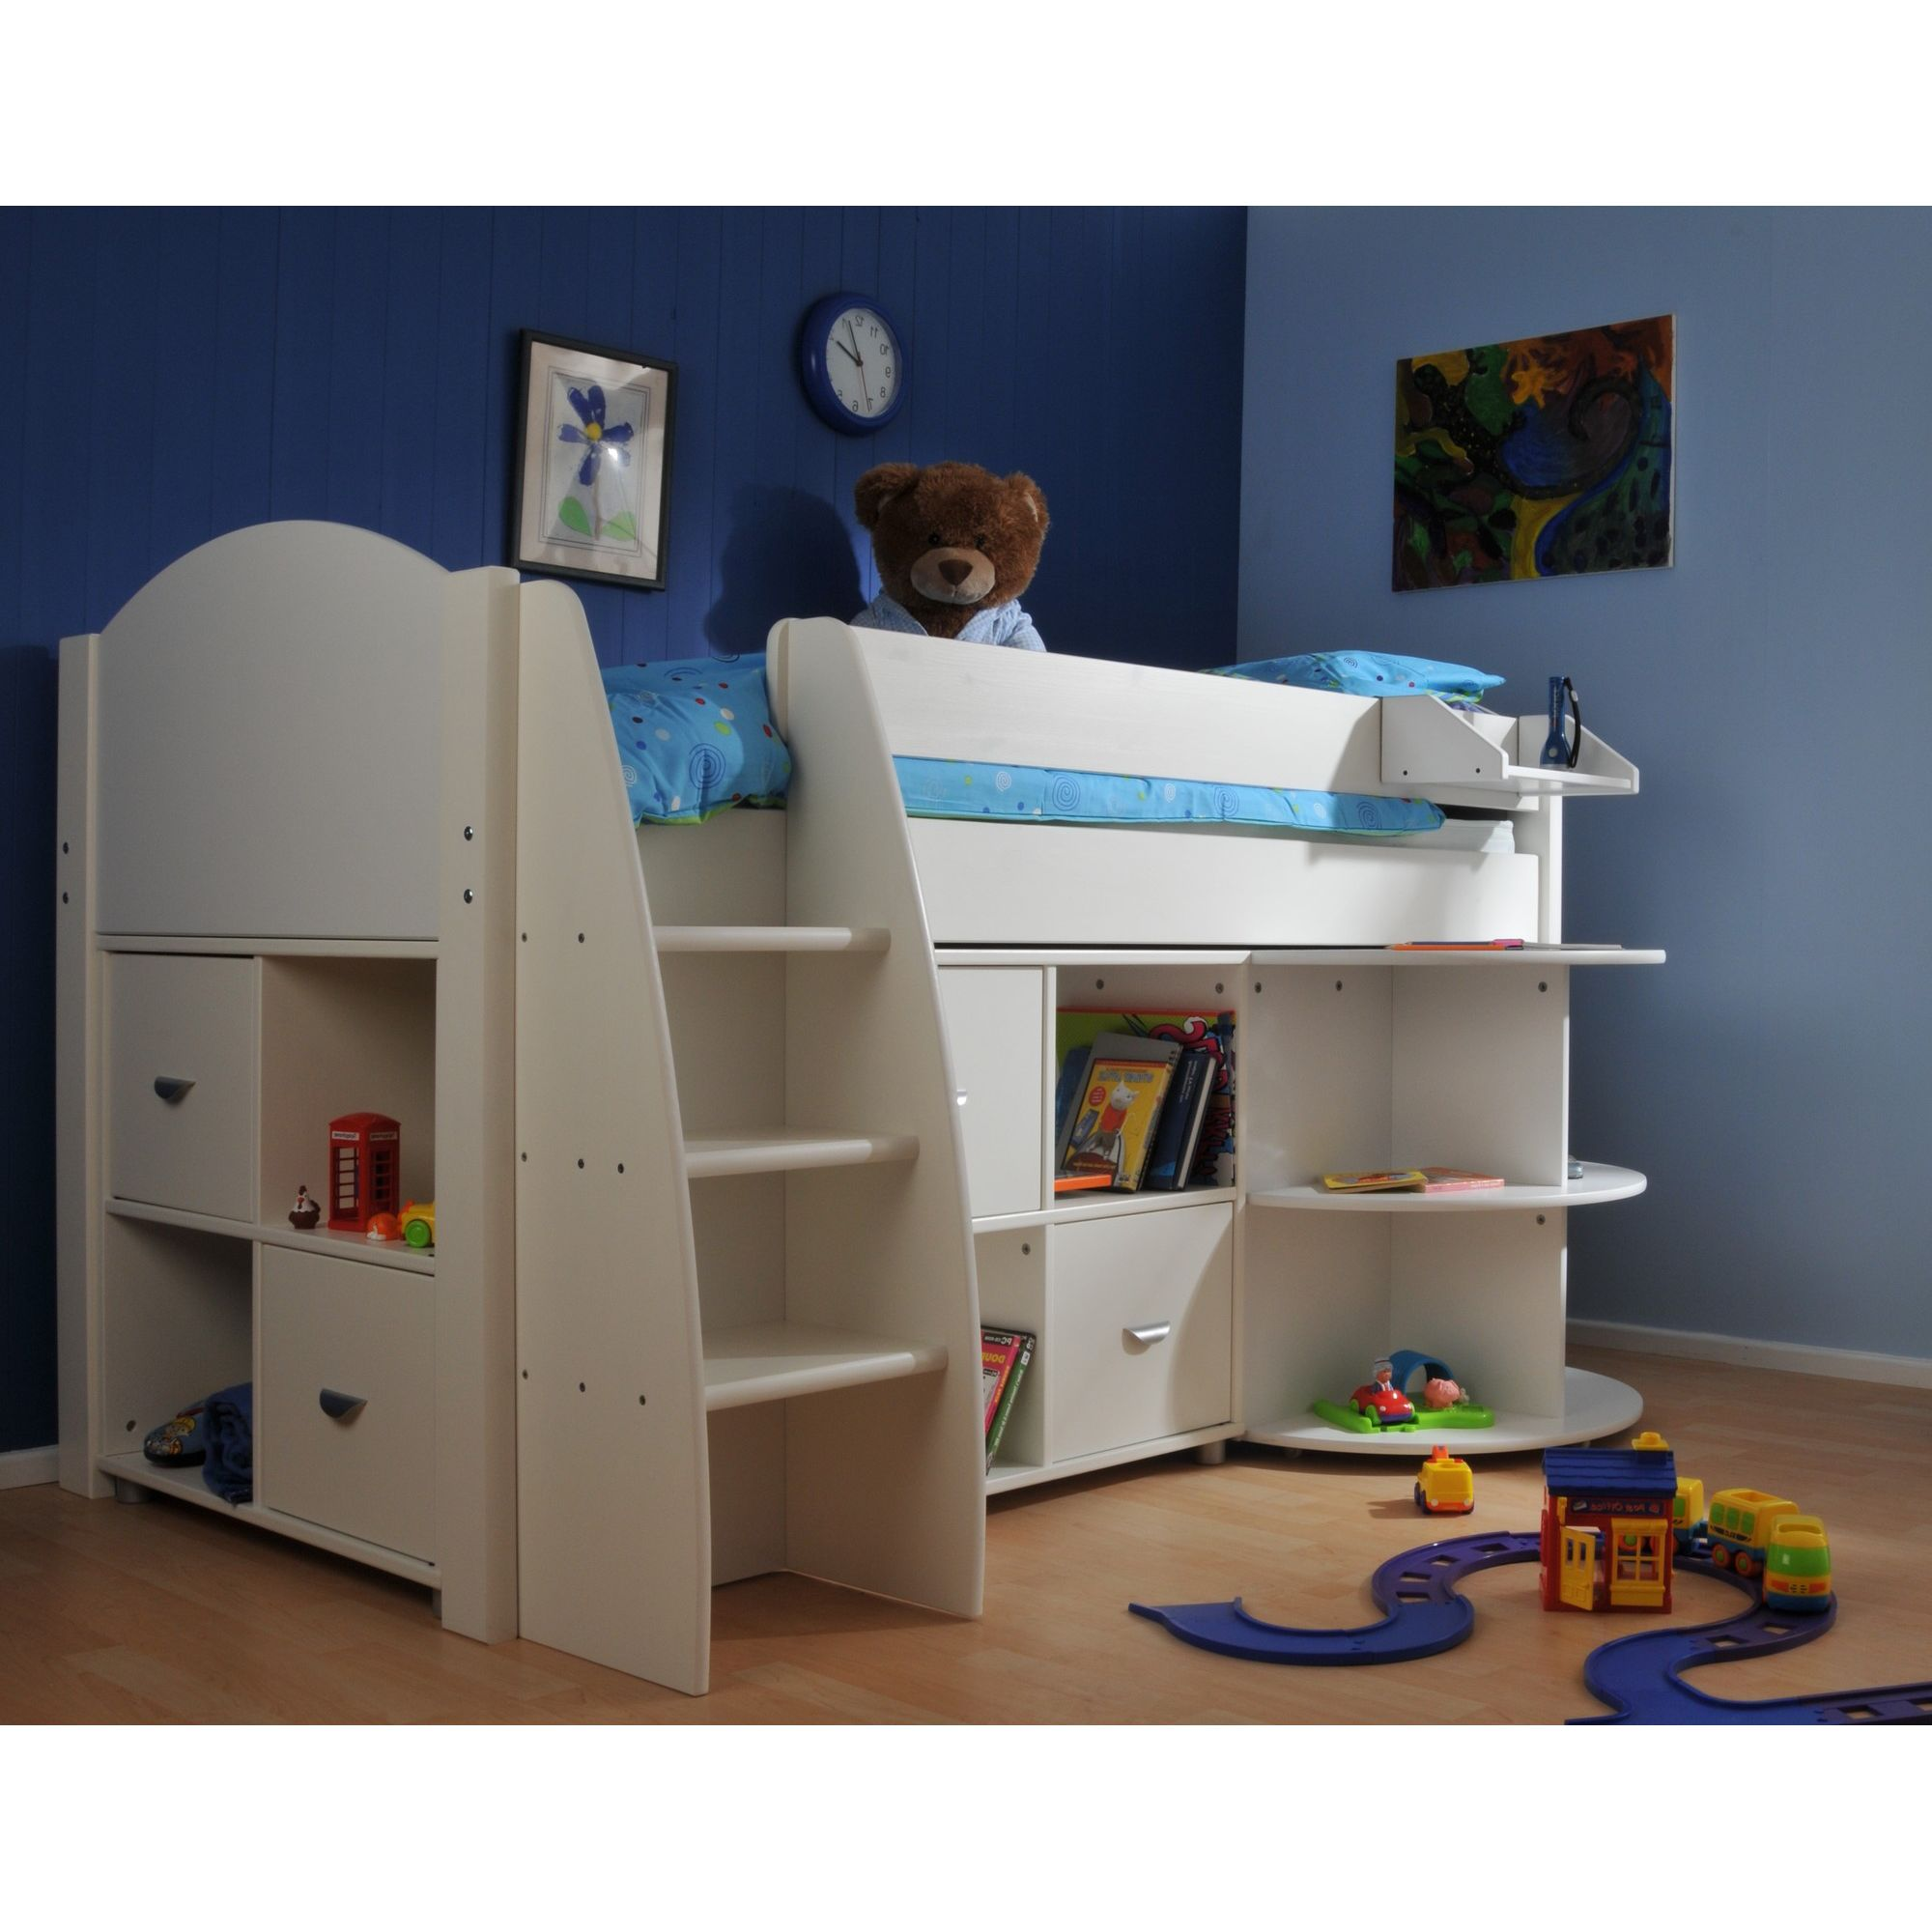 Stompa Rondo Mid Sleeper Bed with 8 Cube Unit and Extending Desk - Antique - Blue at Tesco Direct